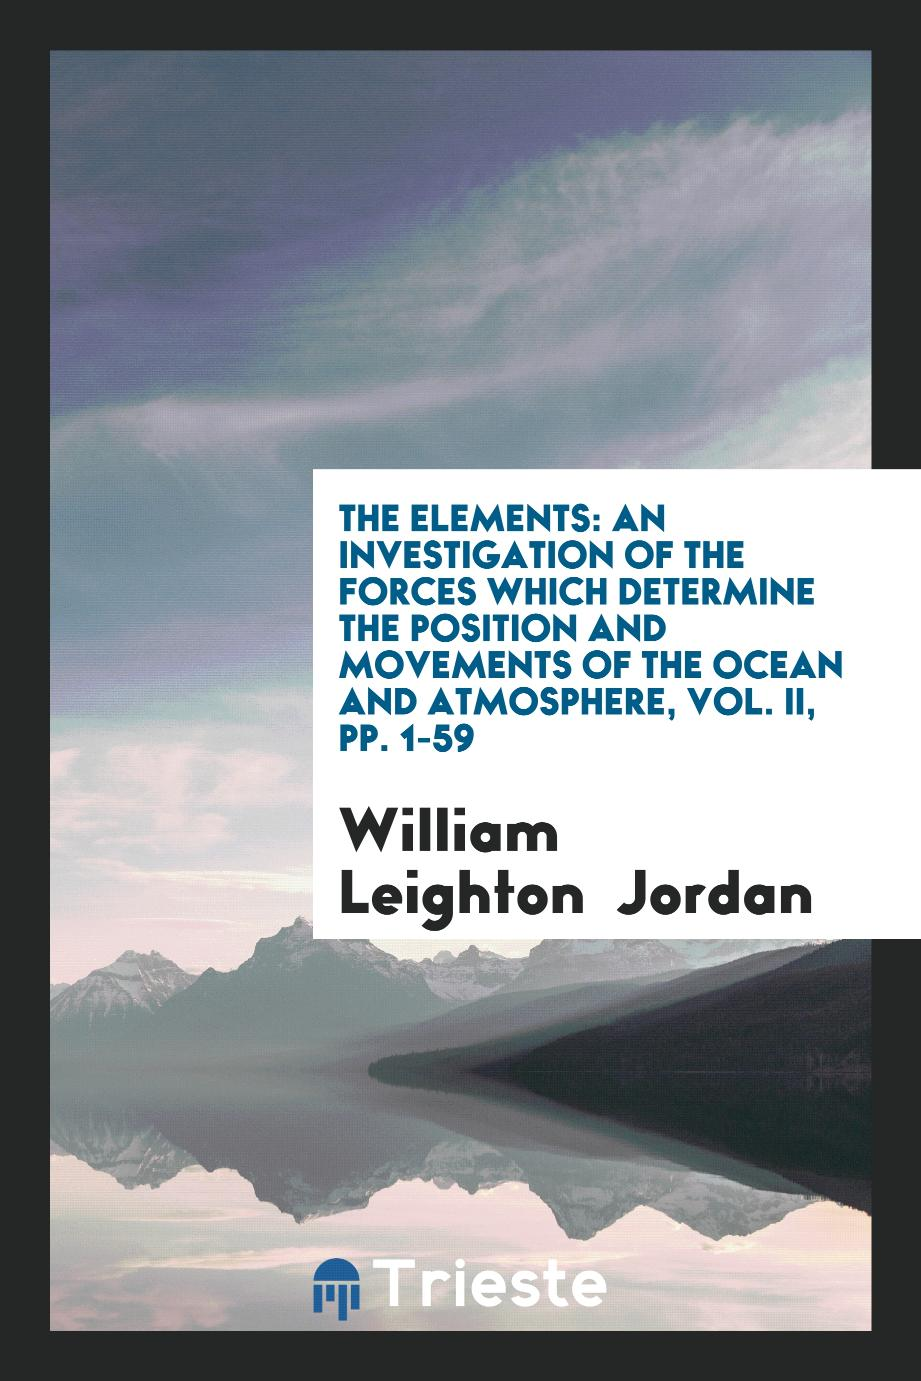 The Elements: An Investigation of the Forces which Determine the Position and Movements of the ocean and atmosphere, Vol. II, pp. 1-59